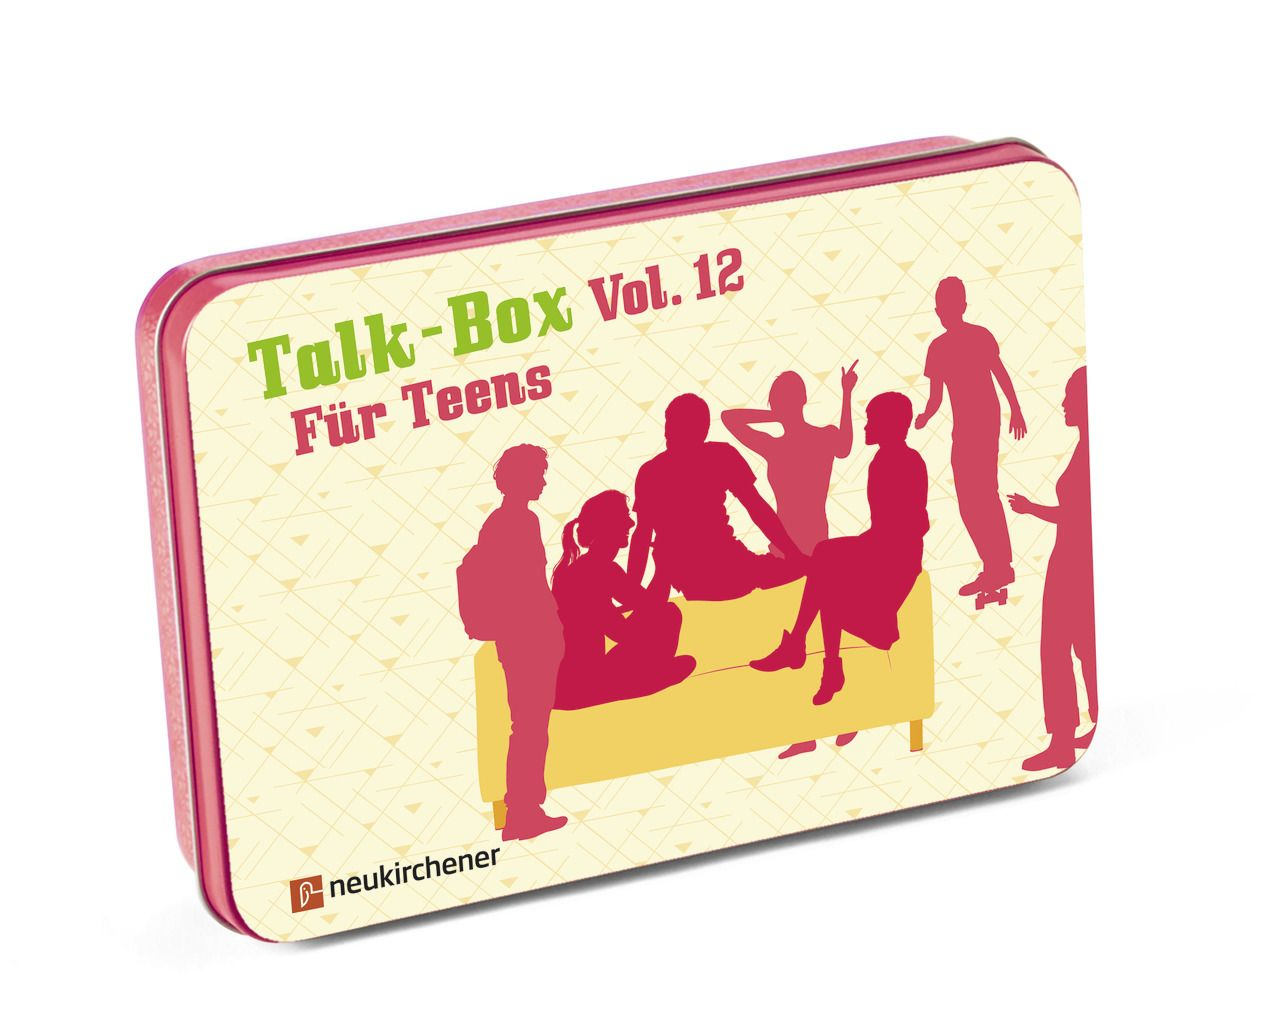 talk-box-teens